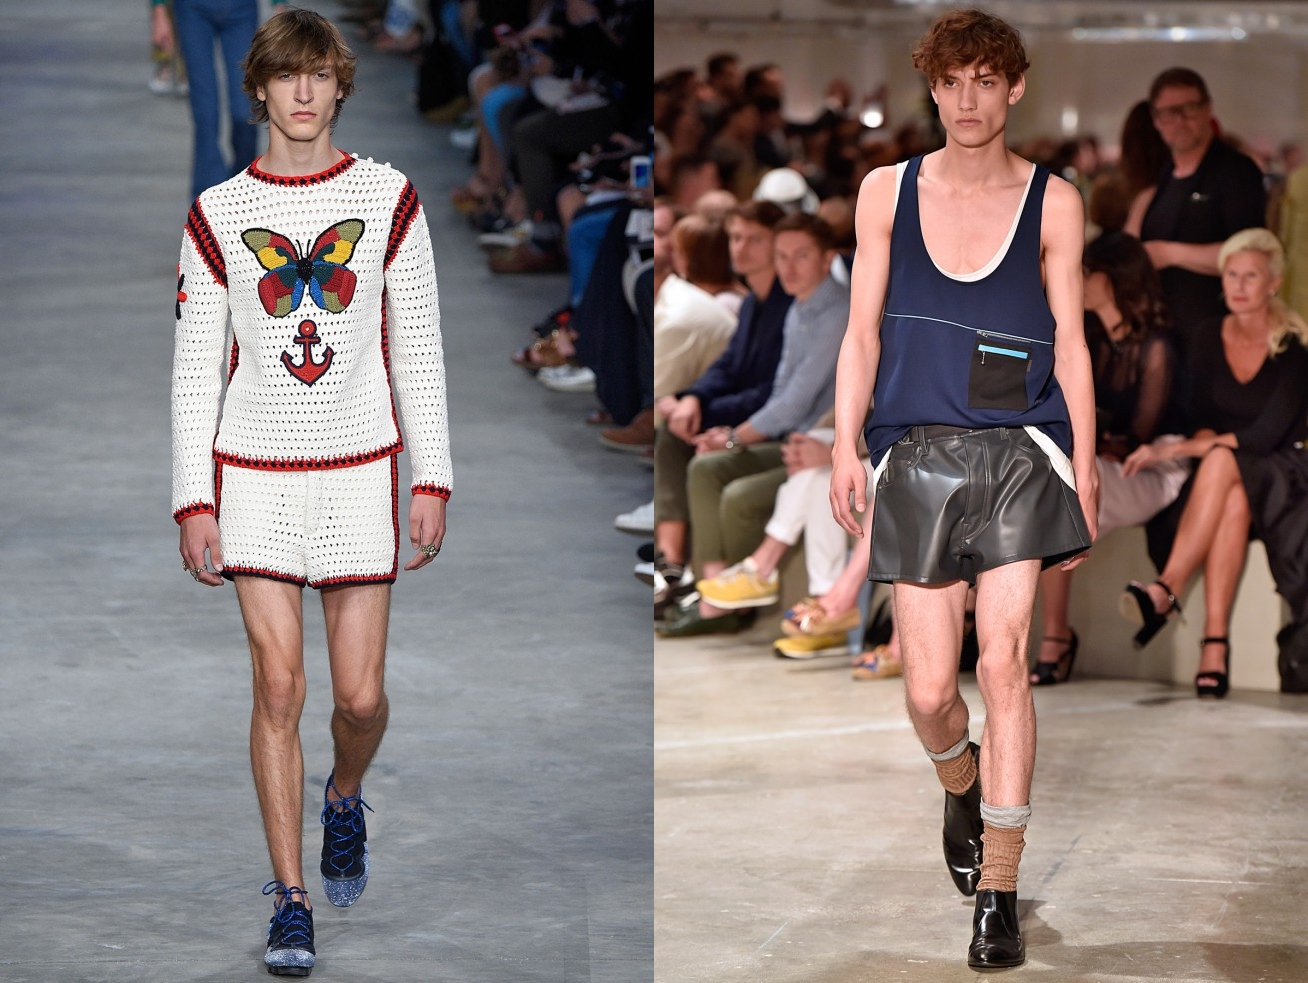 prada summer 2016, gucci summer 2016, desfile masculino, fashion blogger, blogger, mesnwear , blogueiro de moda, alex cursino, moda sem censura, style tips, fashion tips,